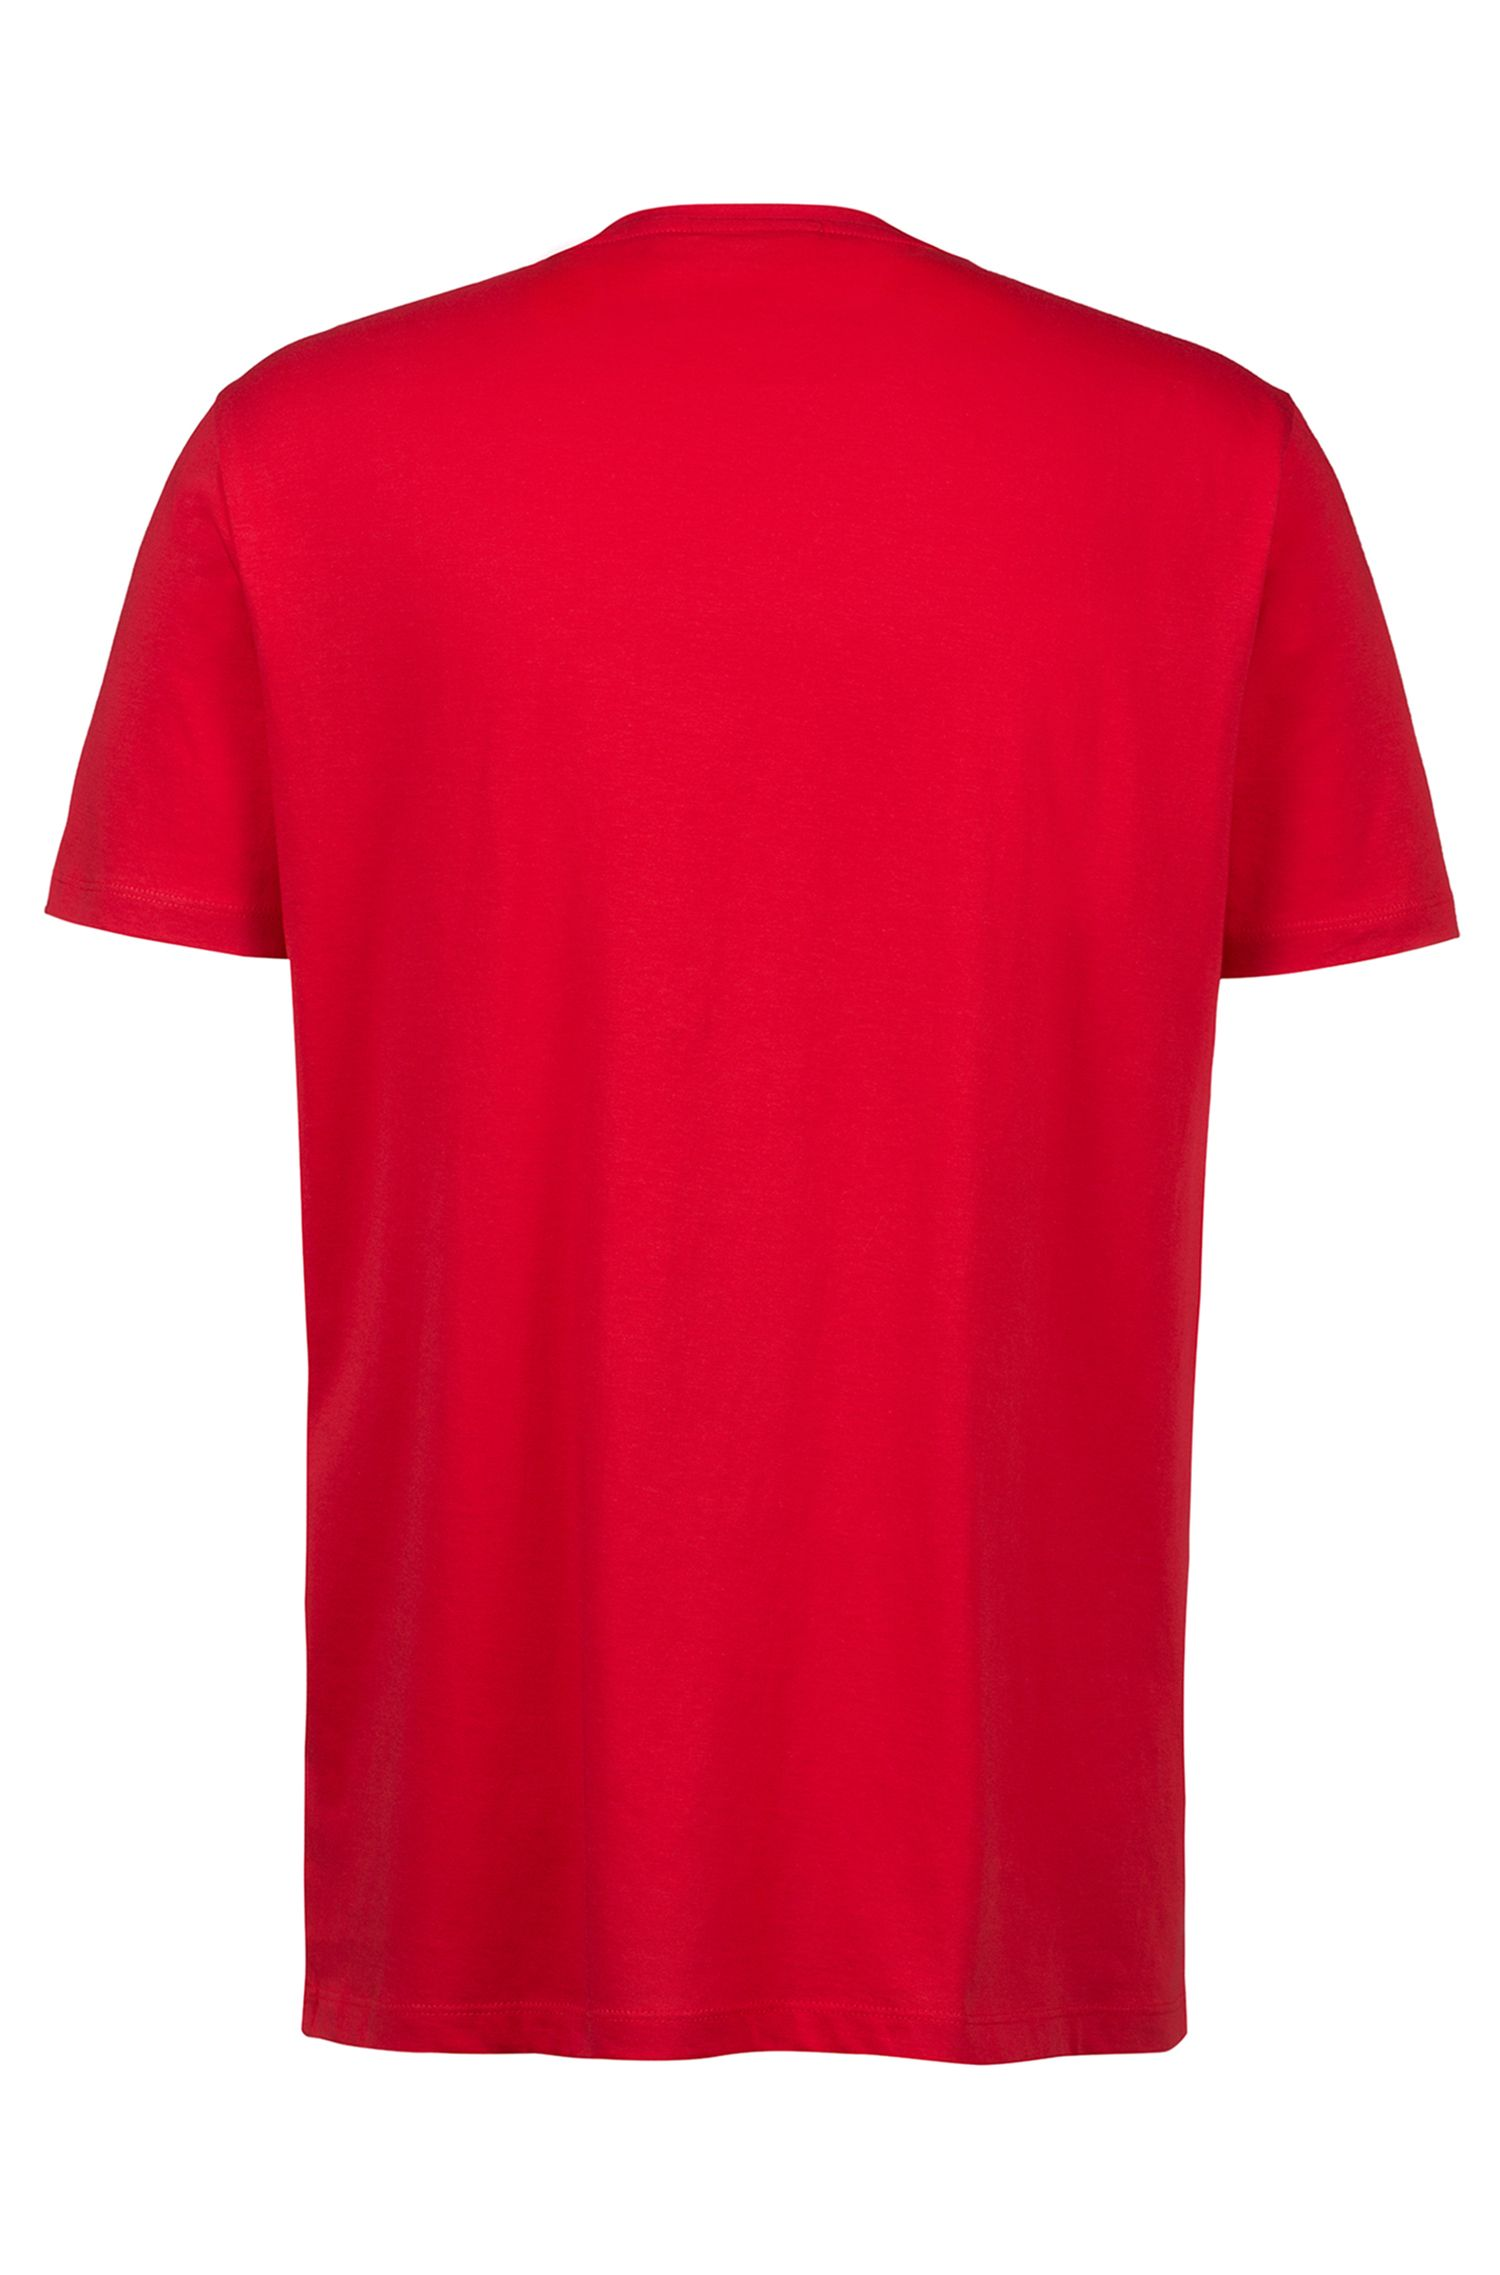 Logo T-shirt in single jersey cotton, Red